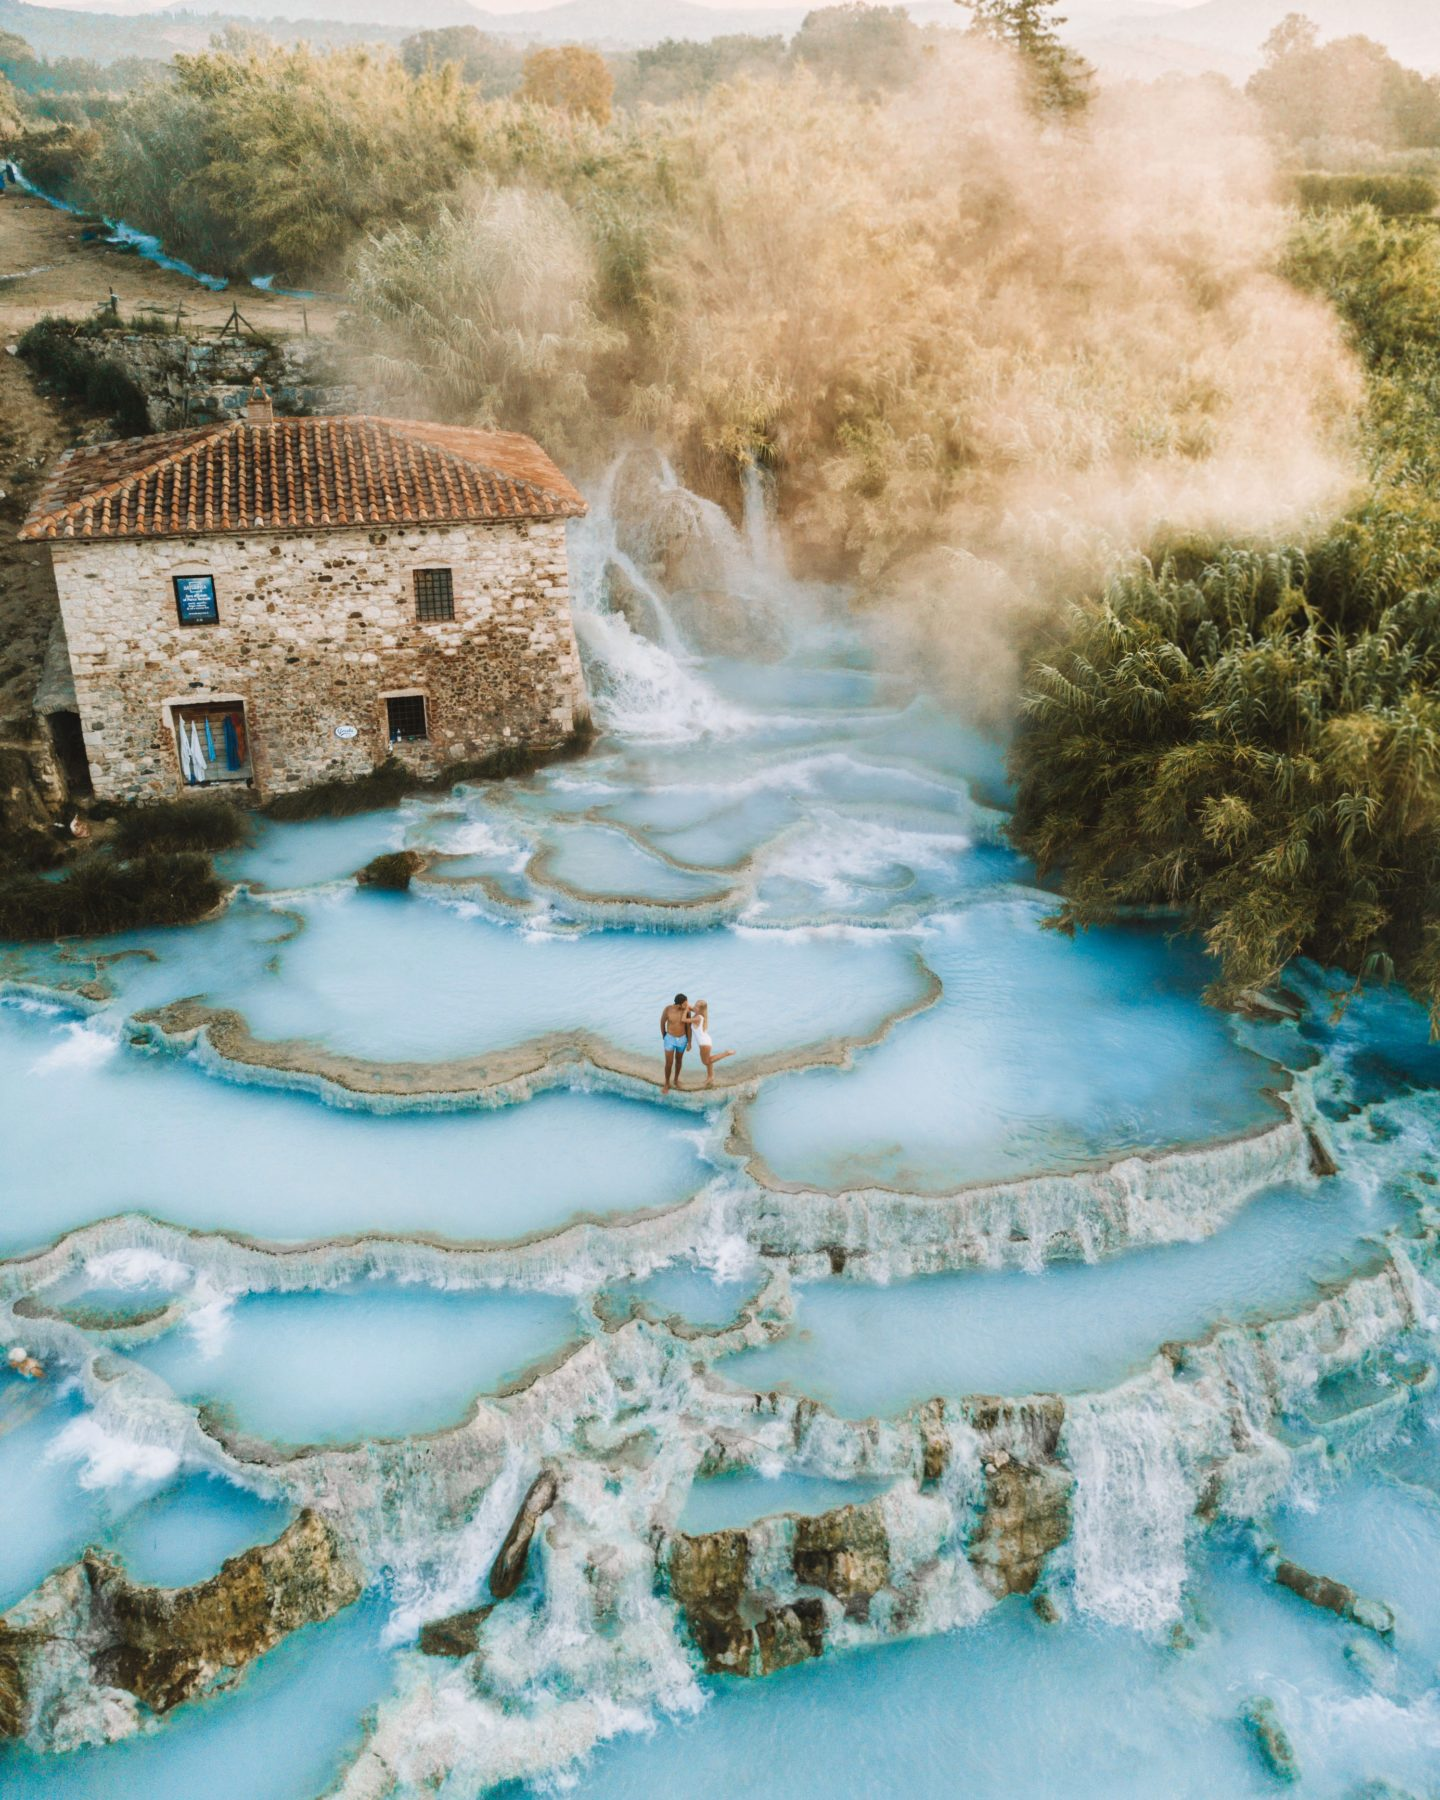 The magical cascade di Saturnia